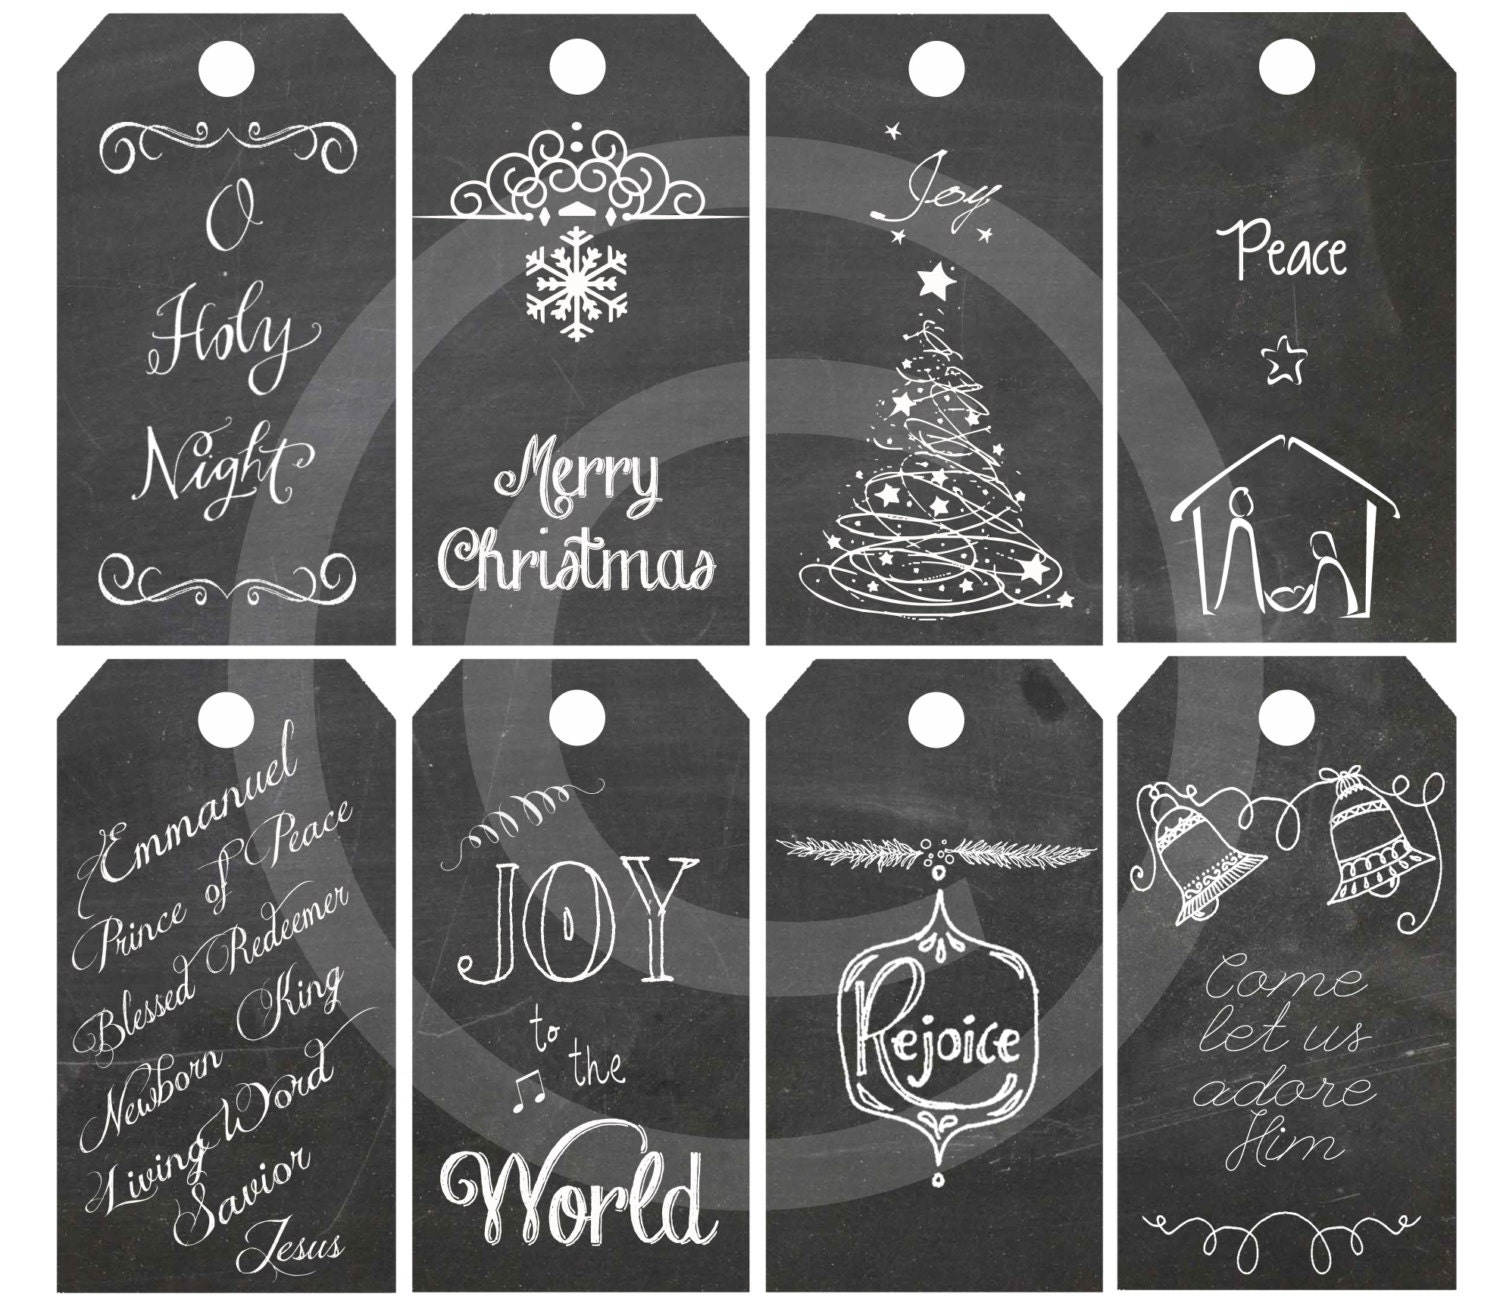 Religious Chrismas Digital Chalkboard Christmas Gift By